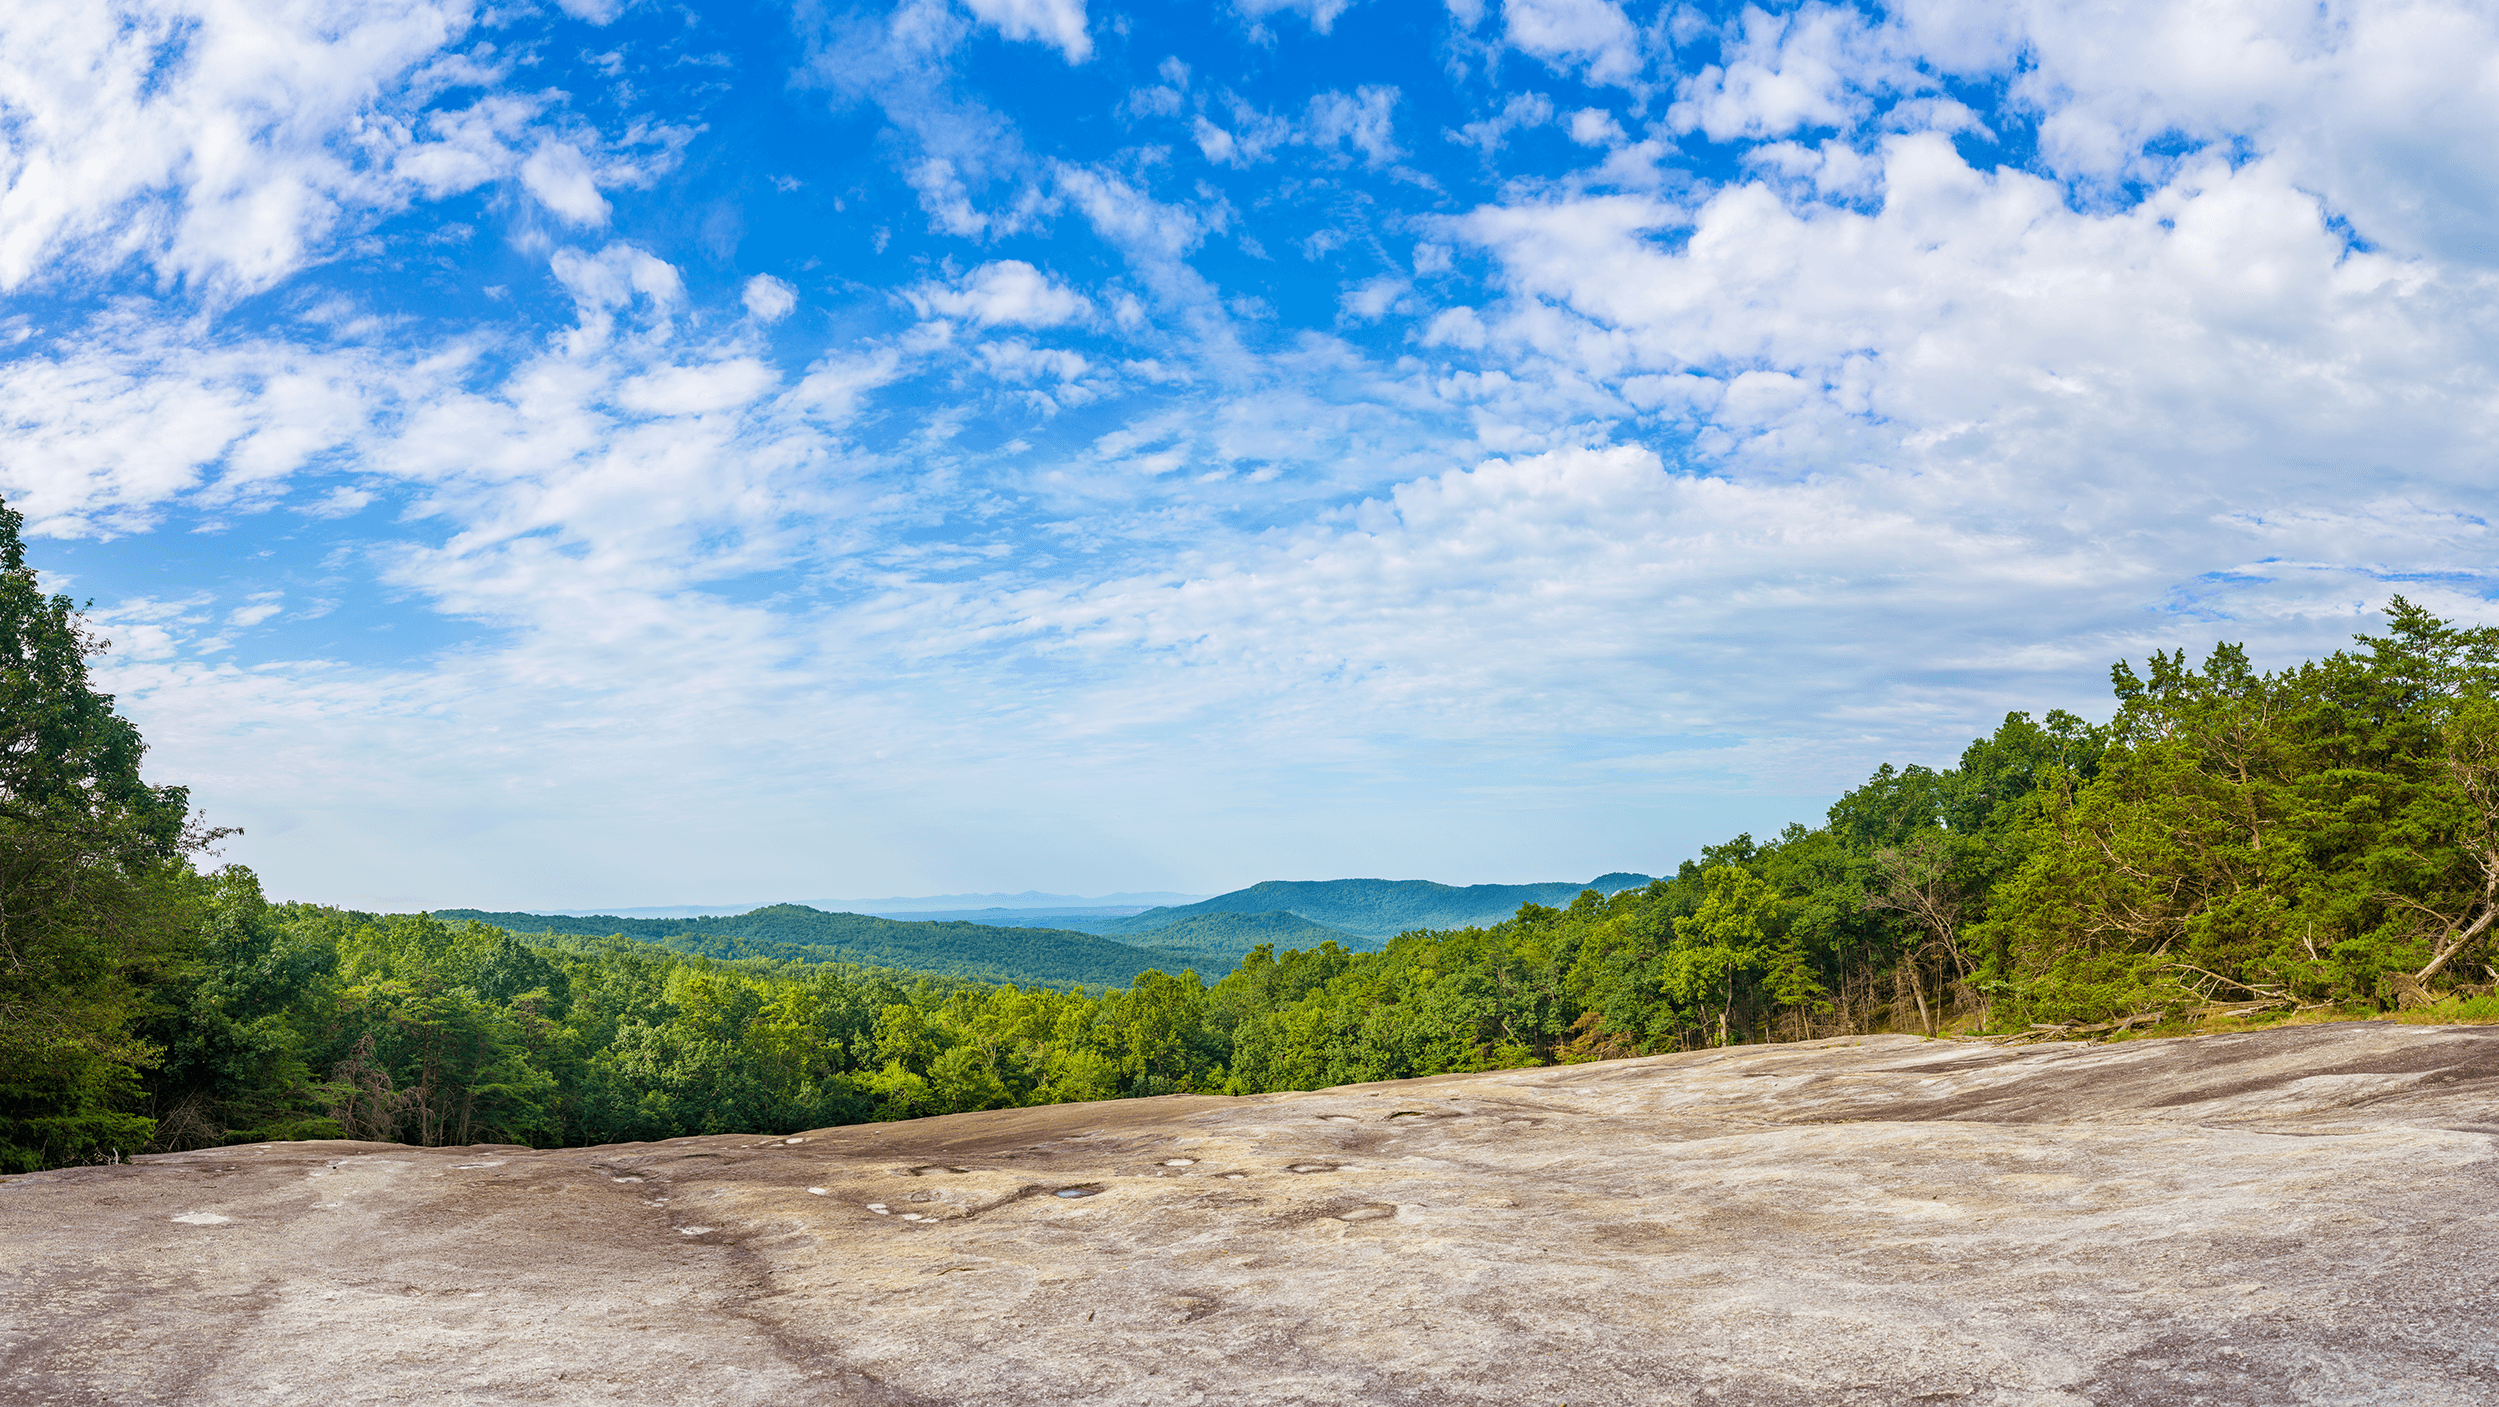 The  Upper Parking Lot  connects with the  Stone Mountain Loop Trail . After a 20-minute ascent, we reached the first of several lookouts.